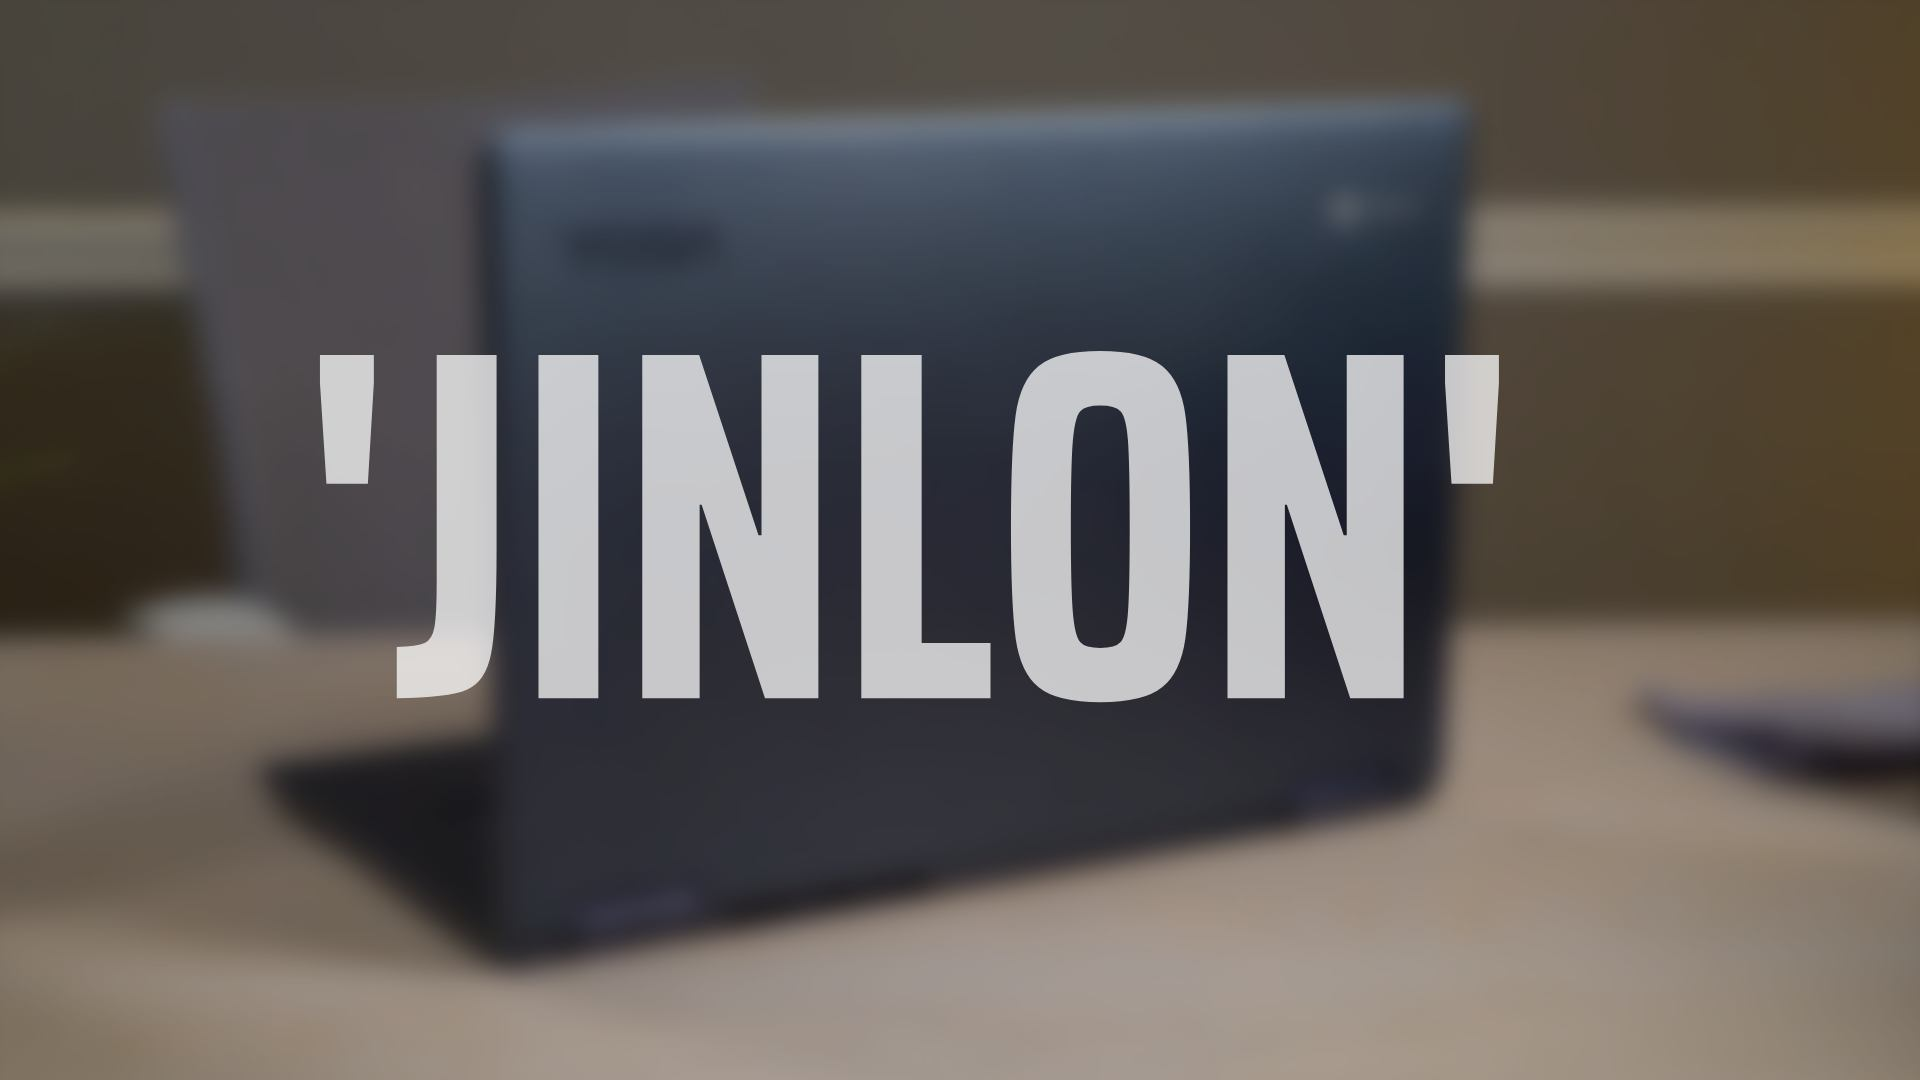 Upcoming Chromebook 'Jinlon' getting a mysterious feature we've not seen before